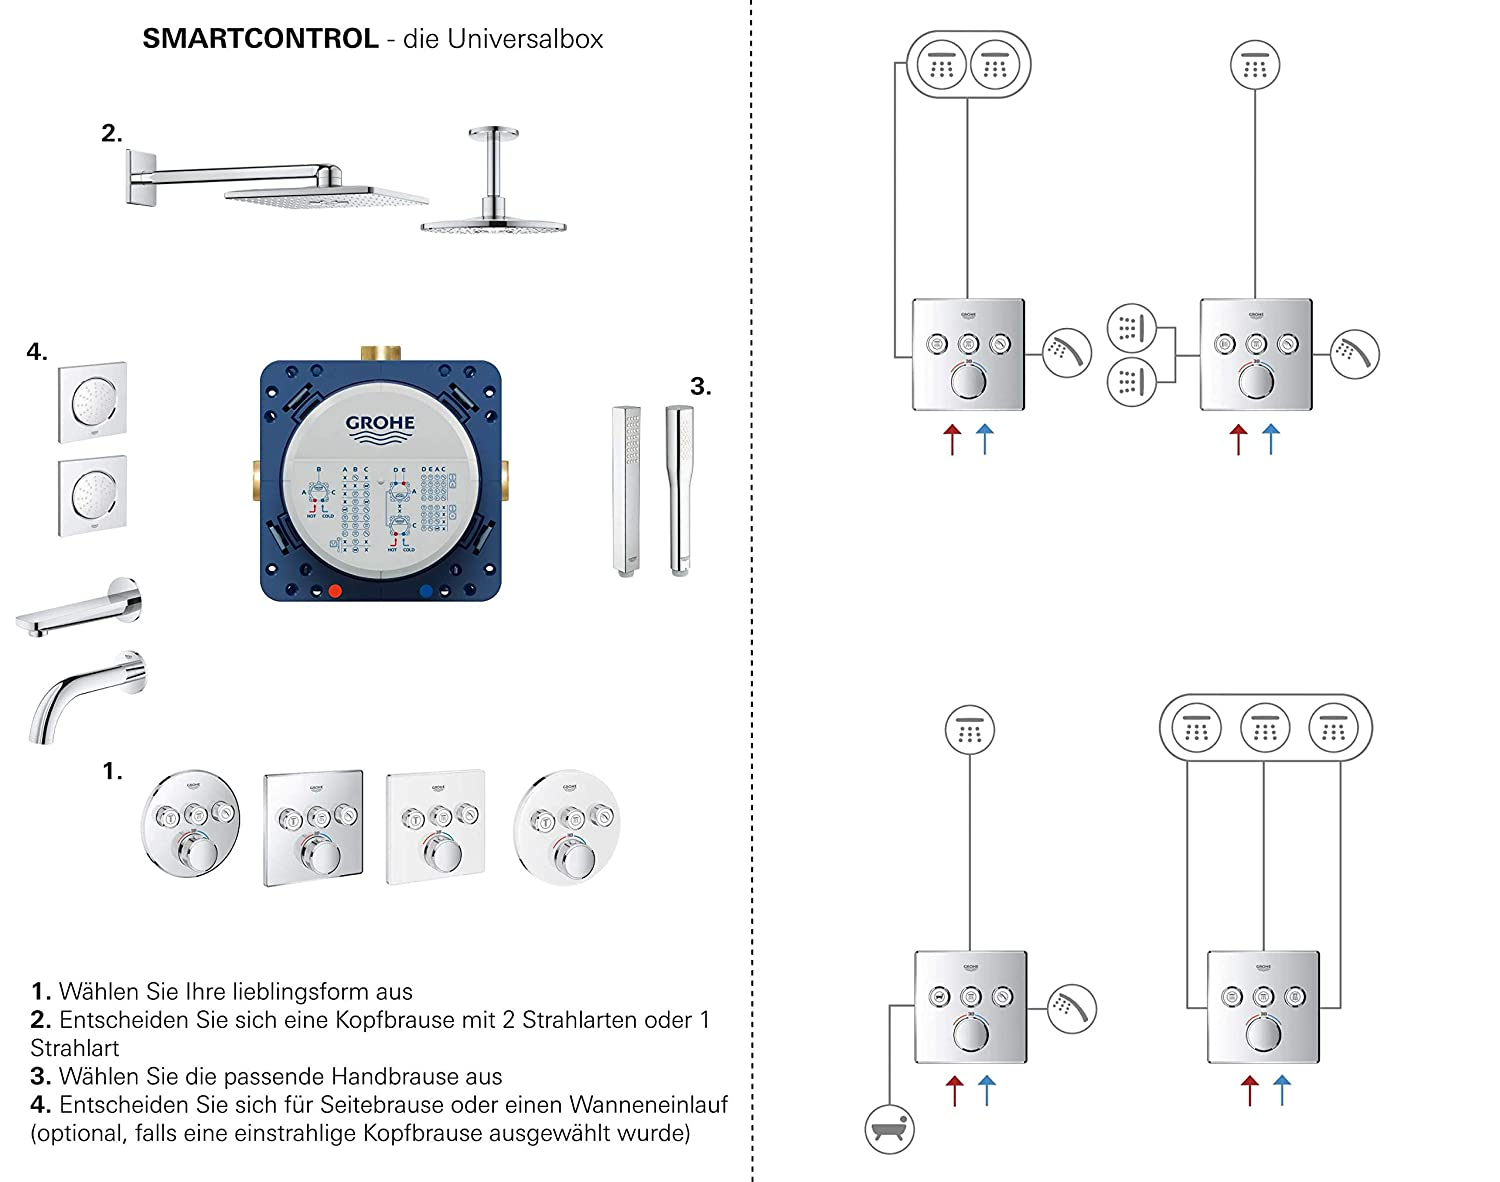 Grohe Grohtherm Smartcontrol | Brause- und Duschsysteme - Thermostat ...